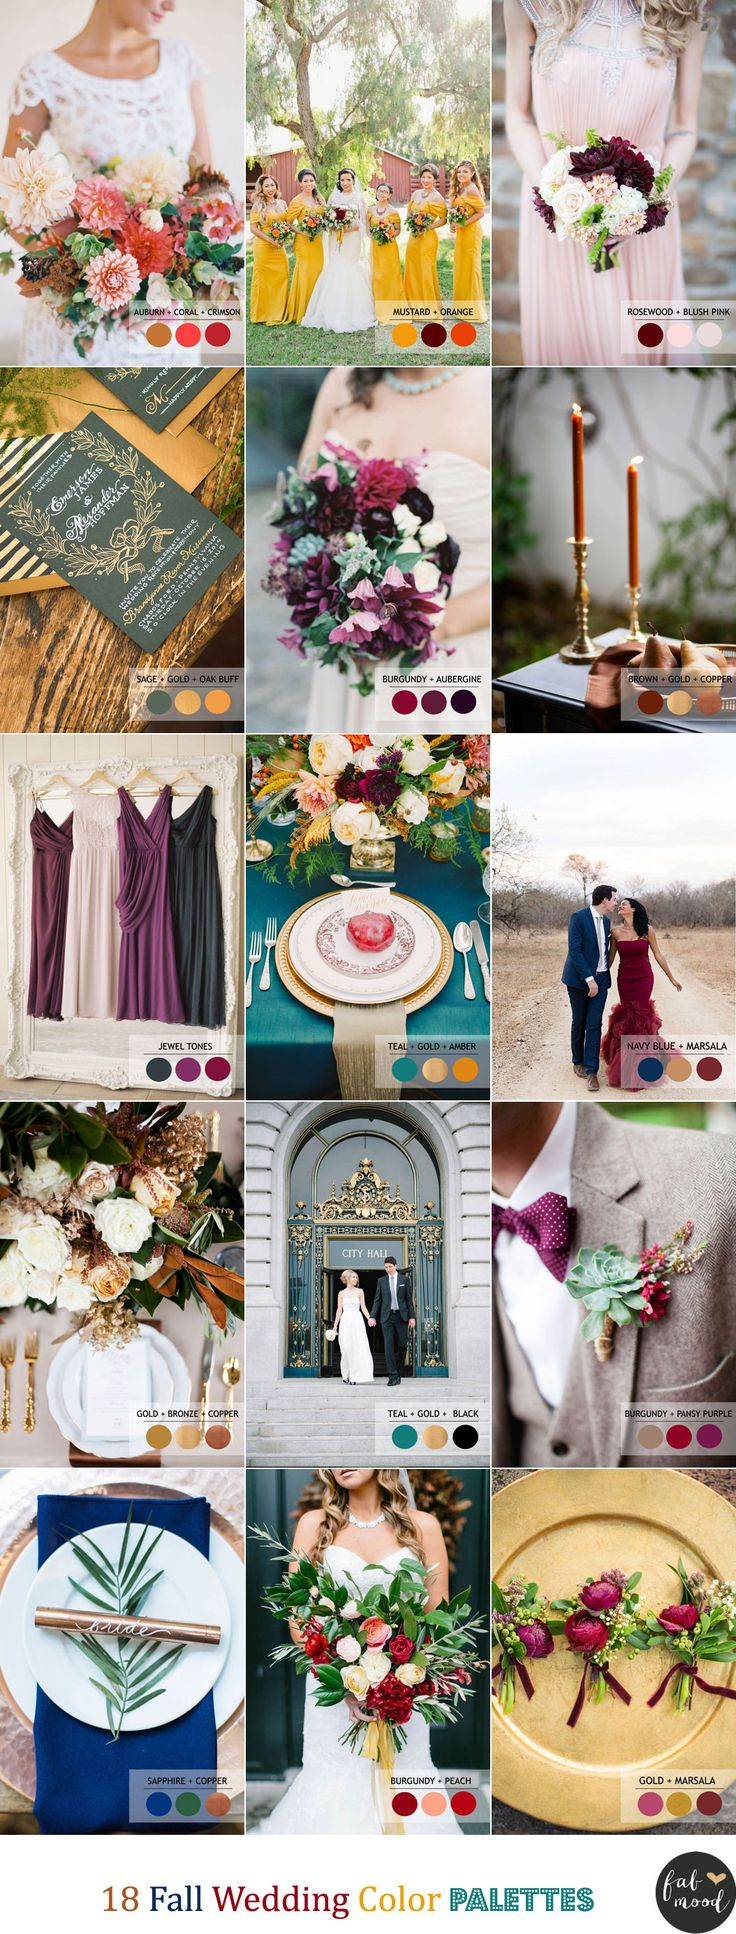 18 Fall Wedding Color Palettes | Autumn wedding colour combinations | https://www.fabmood.com/18-fall-wedding-color-palettes/ #fallweddingtheme #fallwedding: